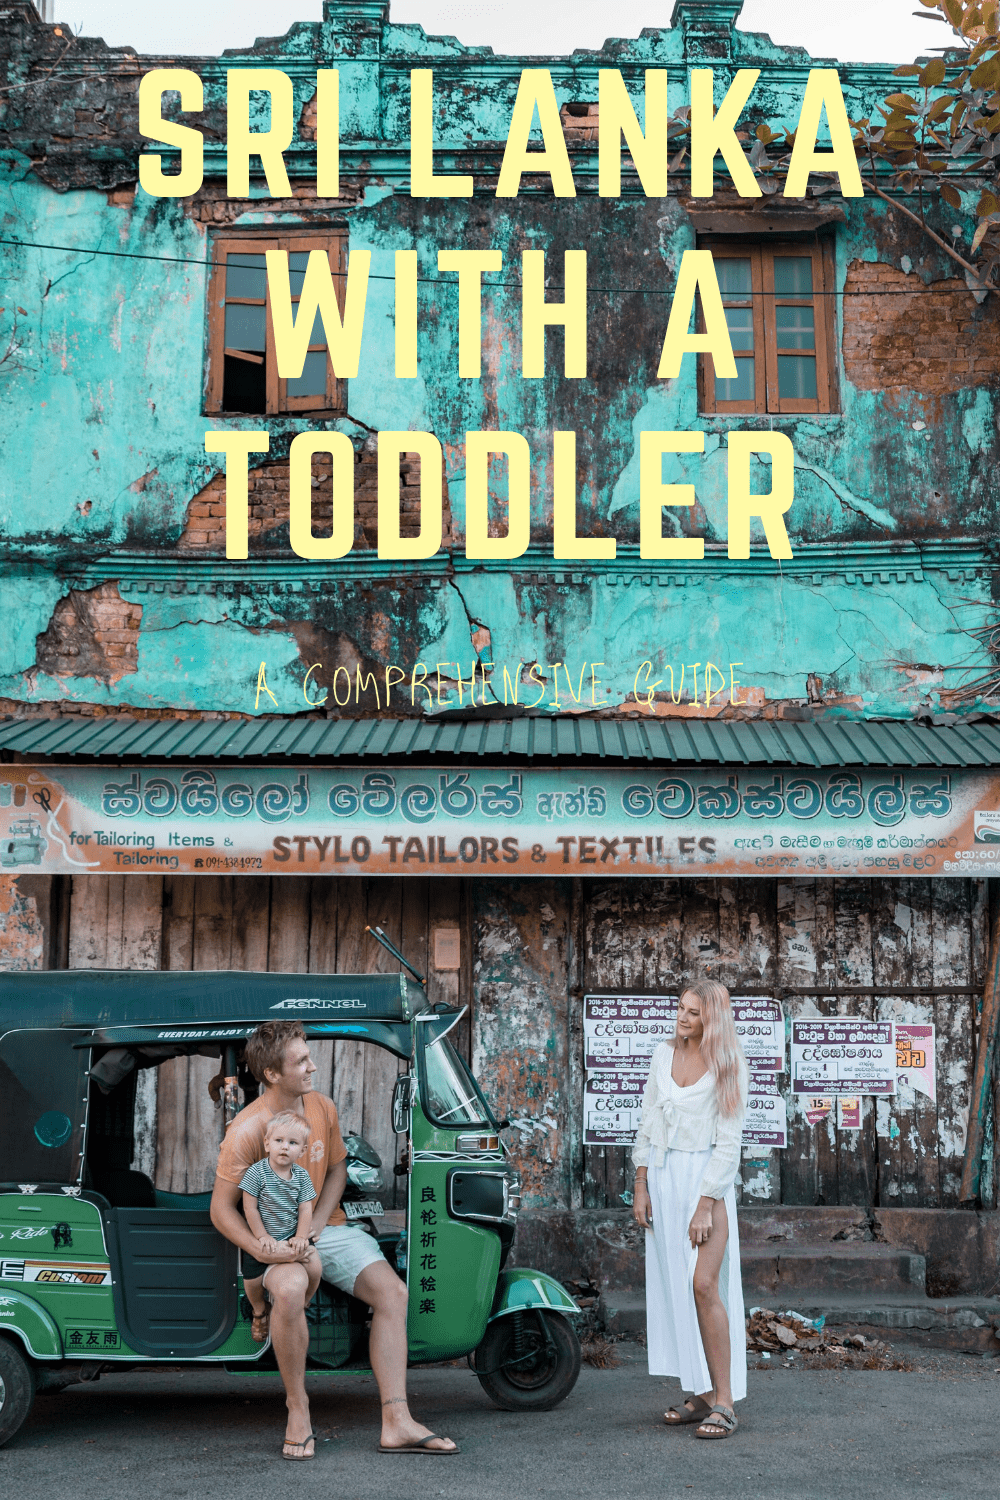 Sri Lanka with a Toddler - A Comprehensive Guide